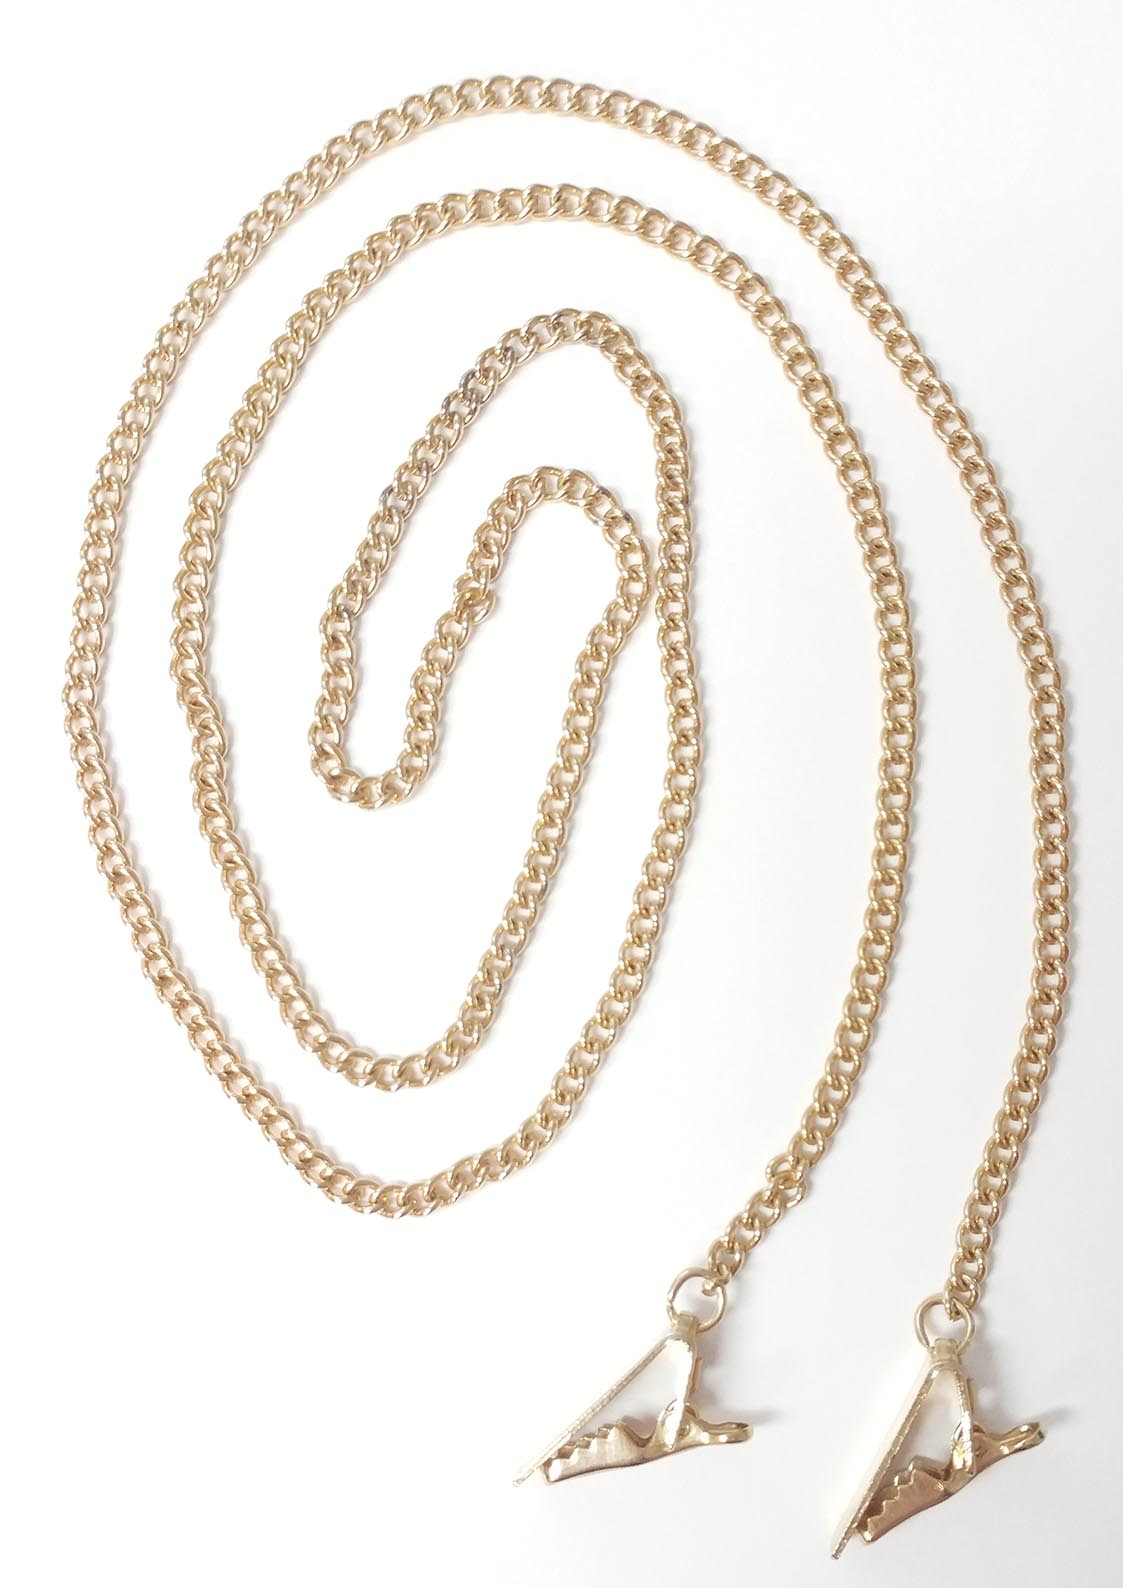 GOLD CHAIN-DOUBLE CLIPS